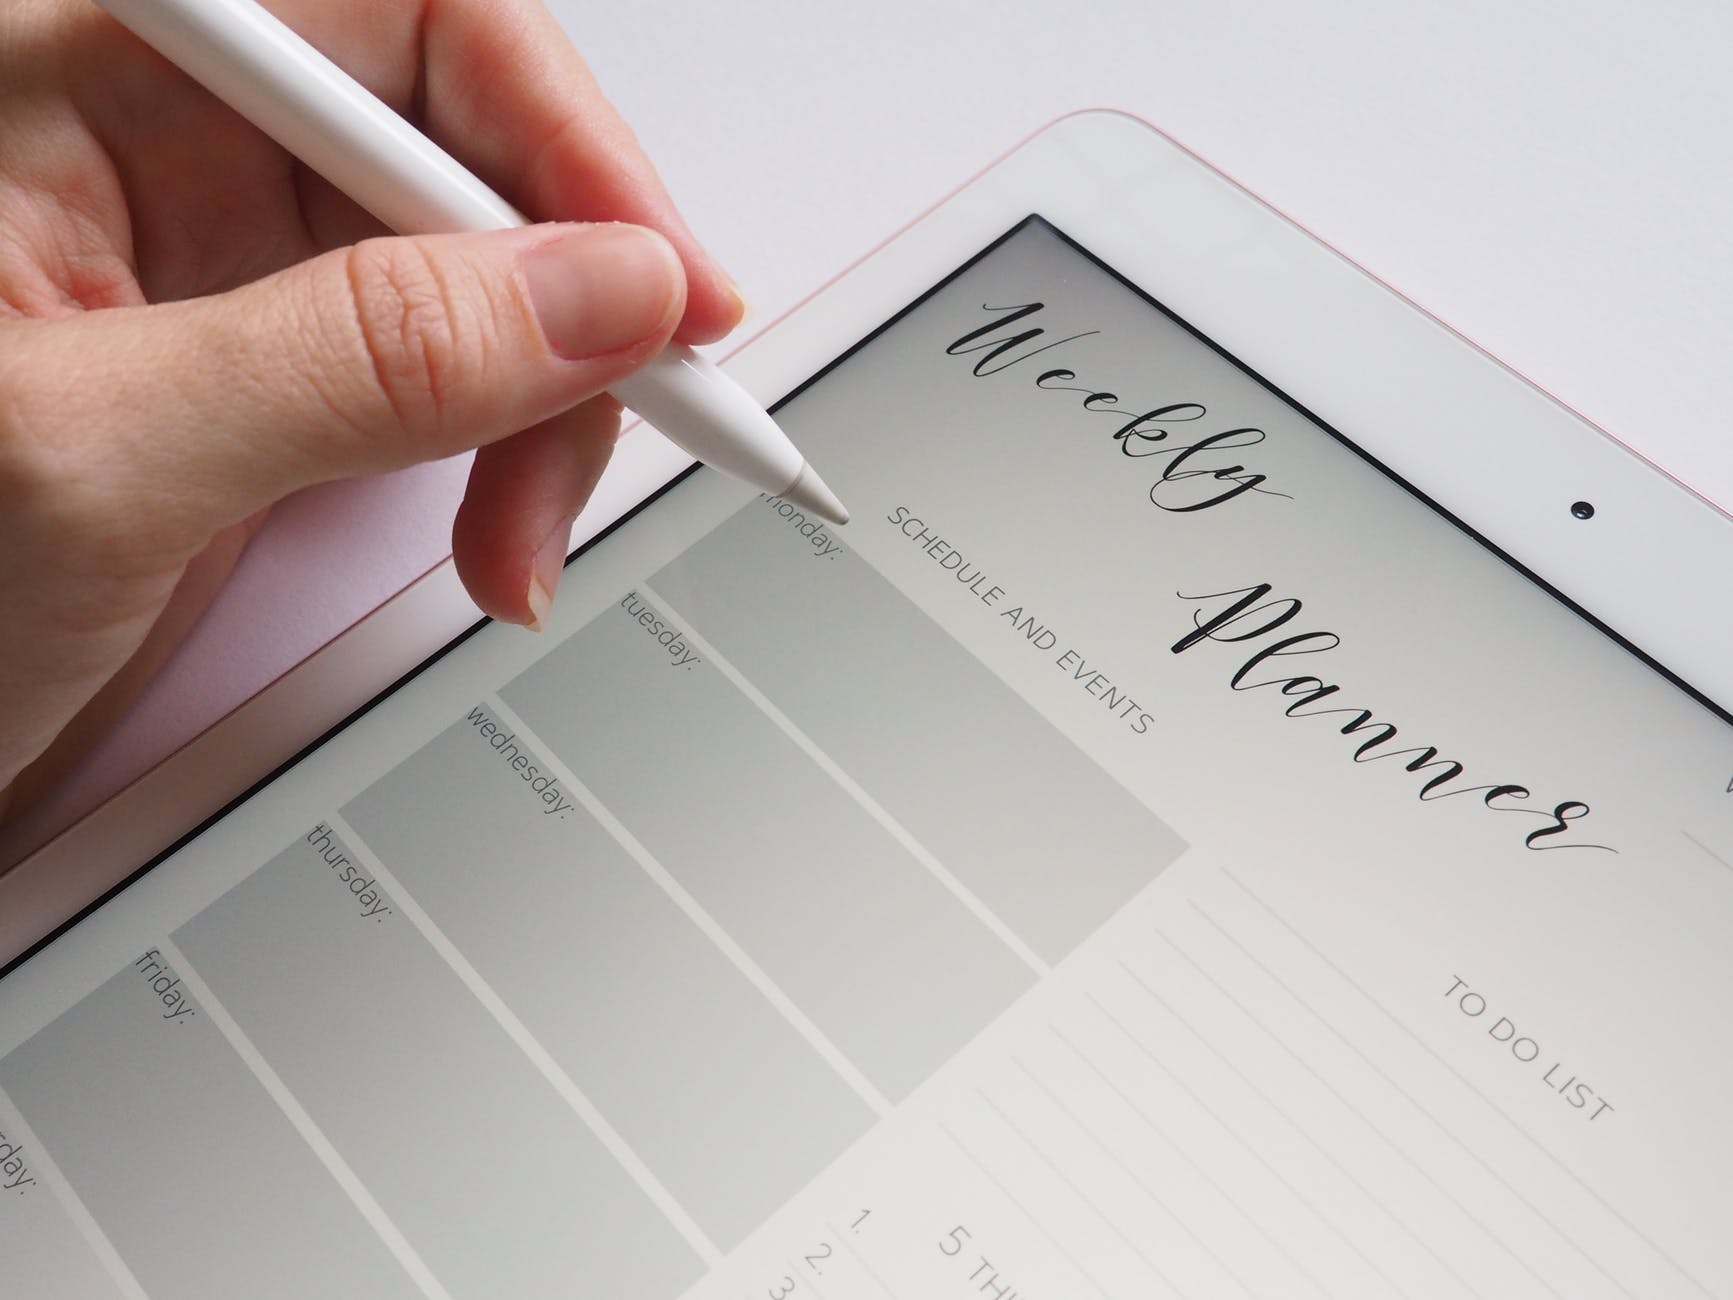 A tablet with a planning section opened. Making a perfect moving plan is easier than ever before.